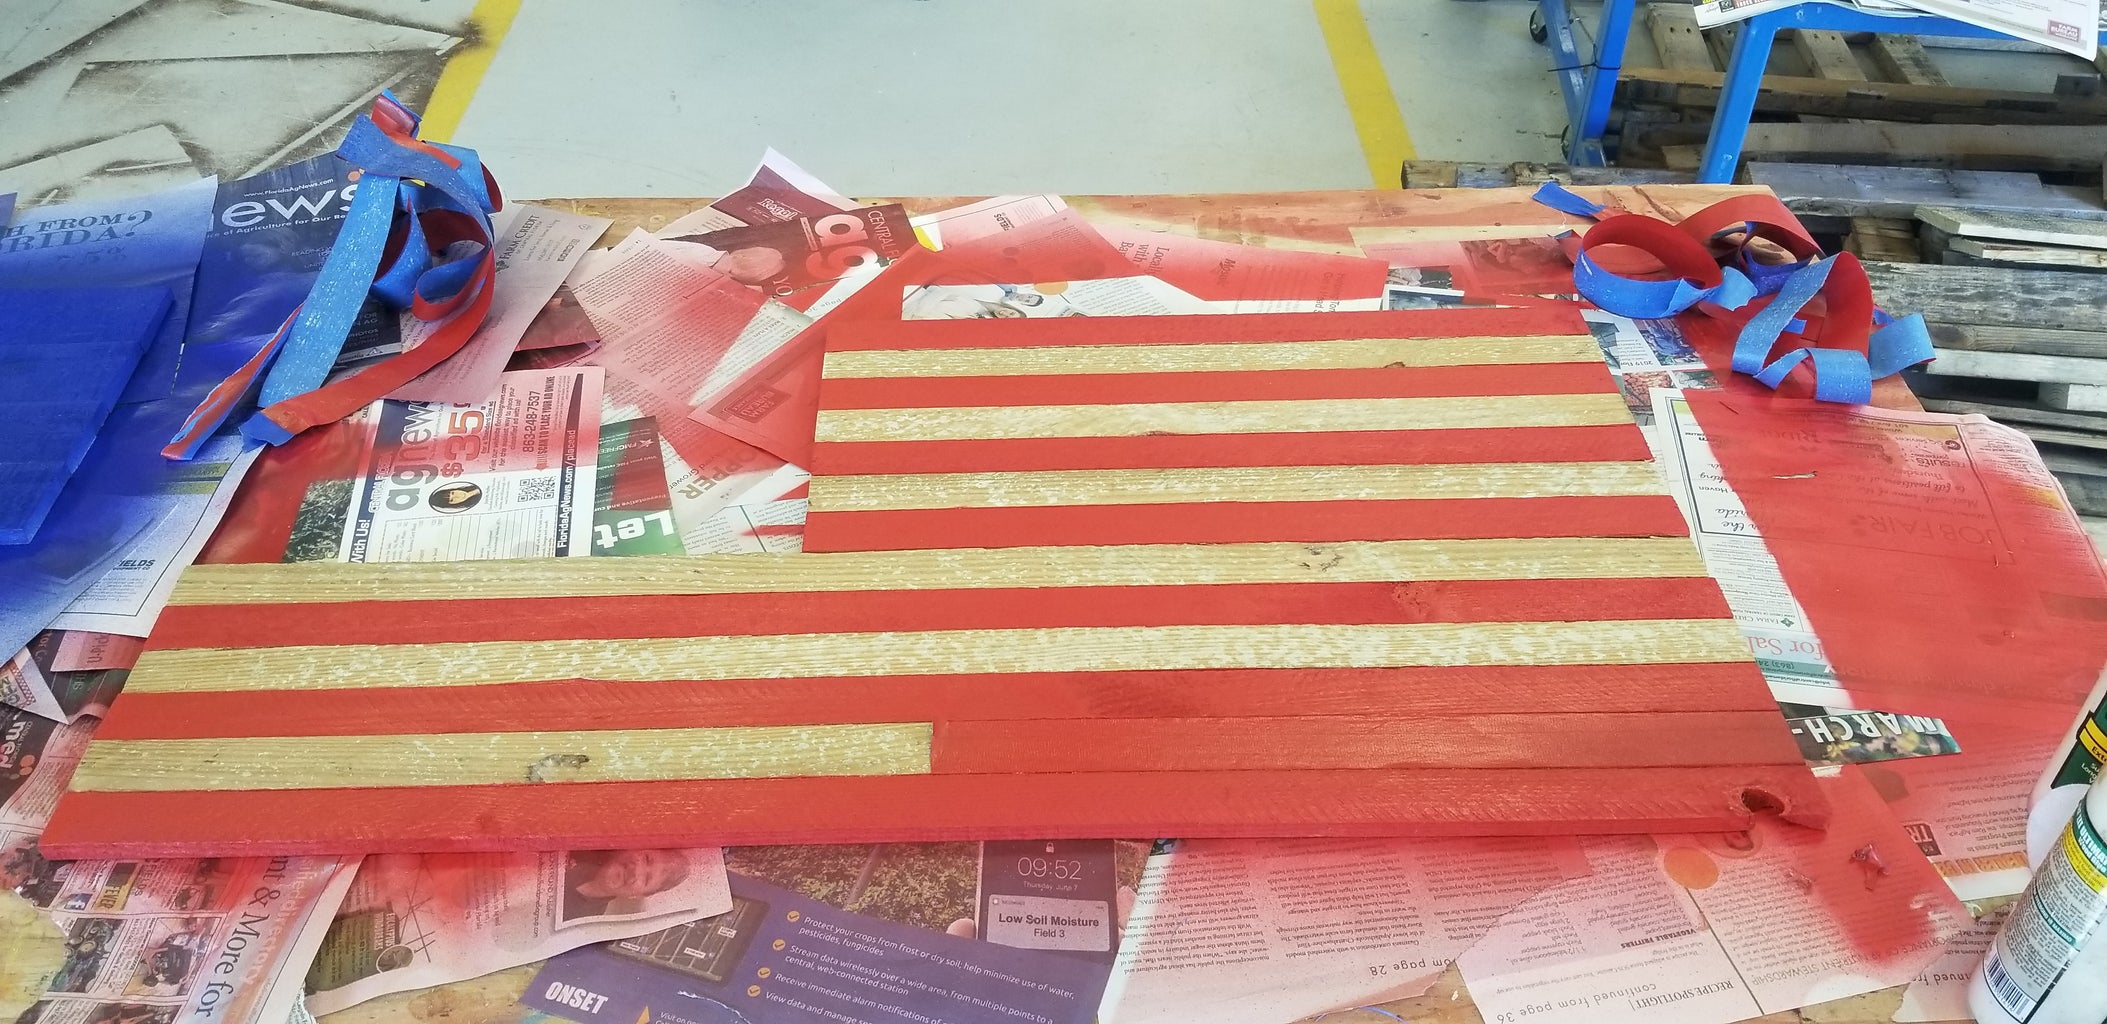 Tape Off the White Stripes Then Spray the Flag Red